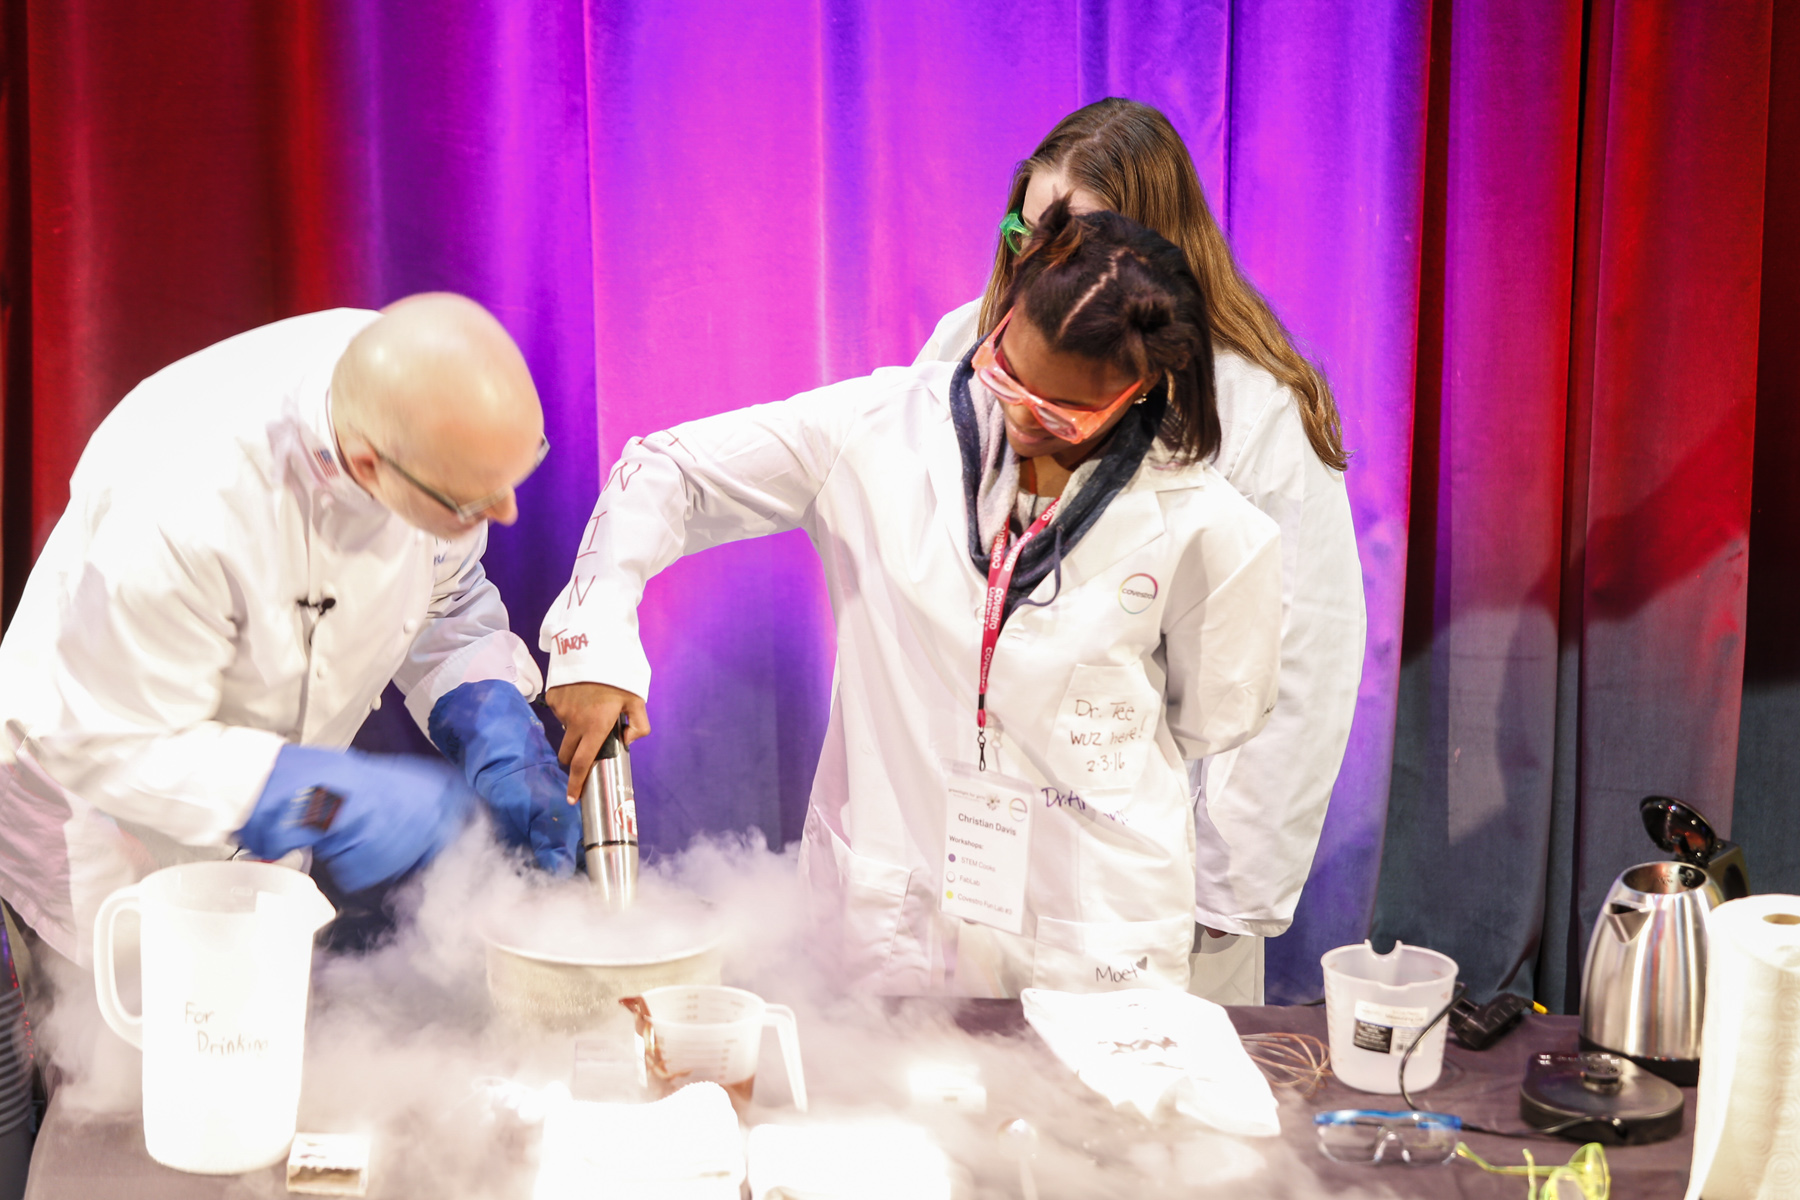 g4g Day @Pittsburgh Feb. 2016    In February 2016, we hosted one incredible launch inspiring 125 girls with the dedicated Pittsburgh team, one famous chef-scientist, Covestro President Jerry F. MacCleary, The County Councilman and the Mayor of Pittsburgh making it all official!  Click here for the full album!